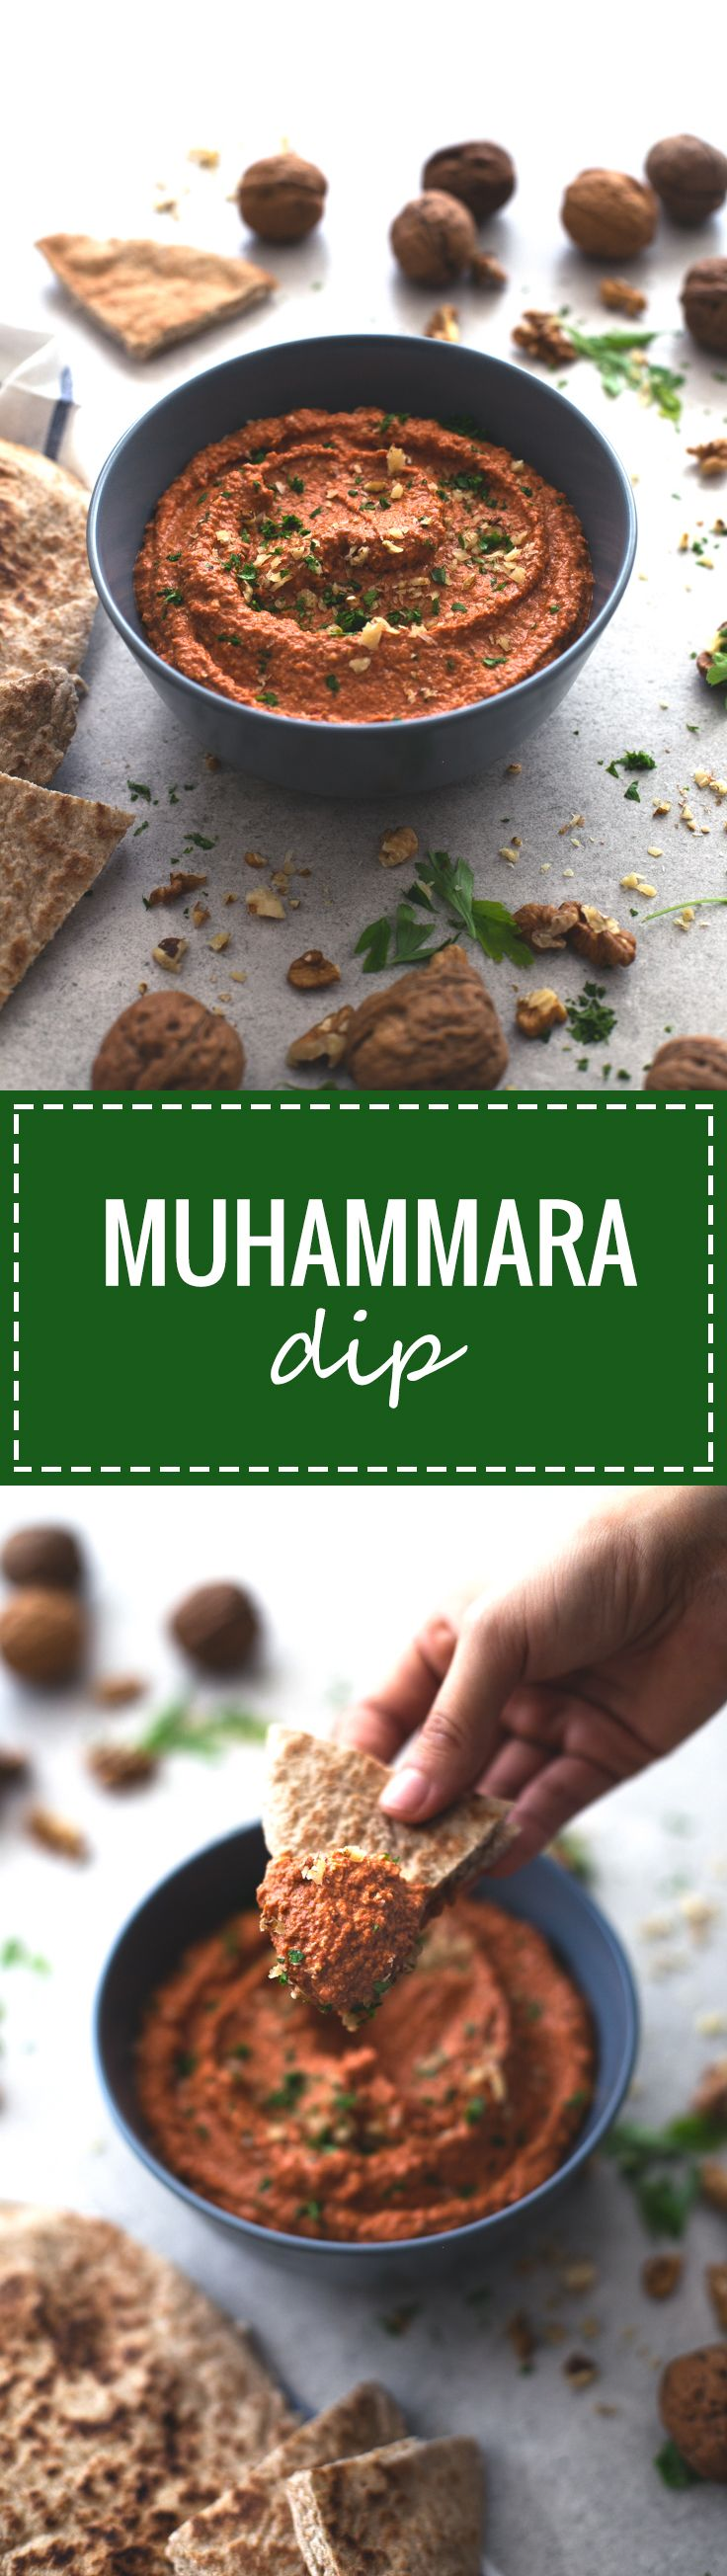 (Vegan and GF) Muhammara is a spicy Syrian red pepper and walnut dip. It's so tasty and is ready in less than 5 minutes, you just need to blend all the ingredients!